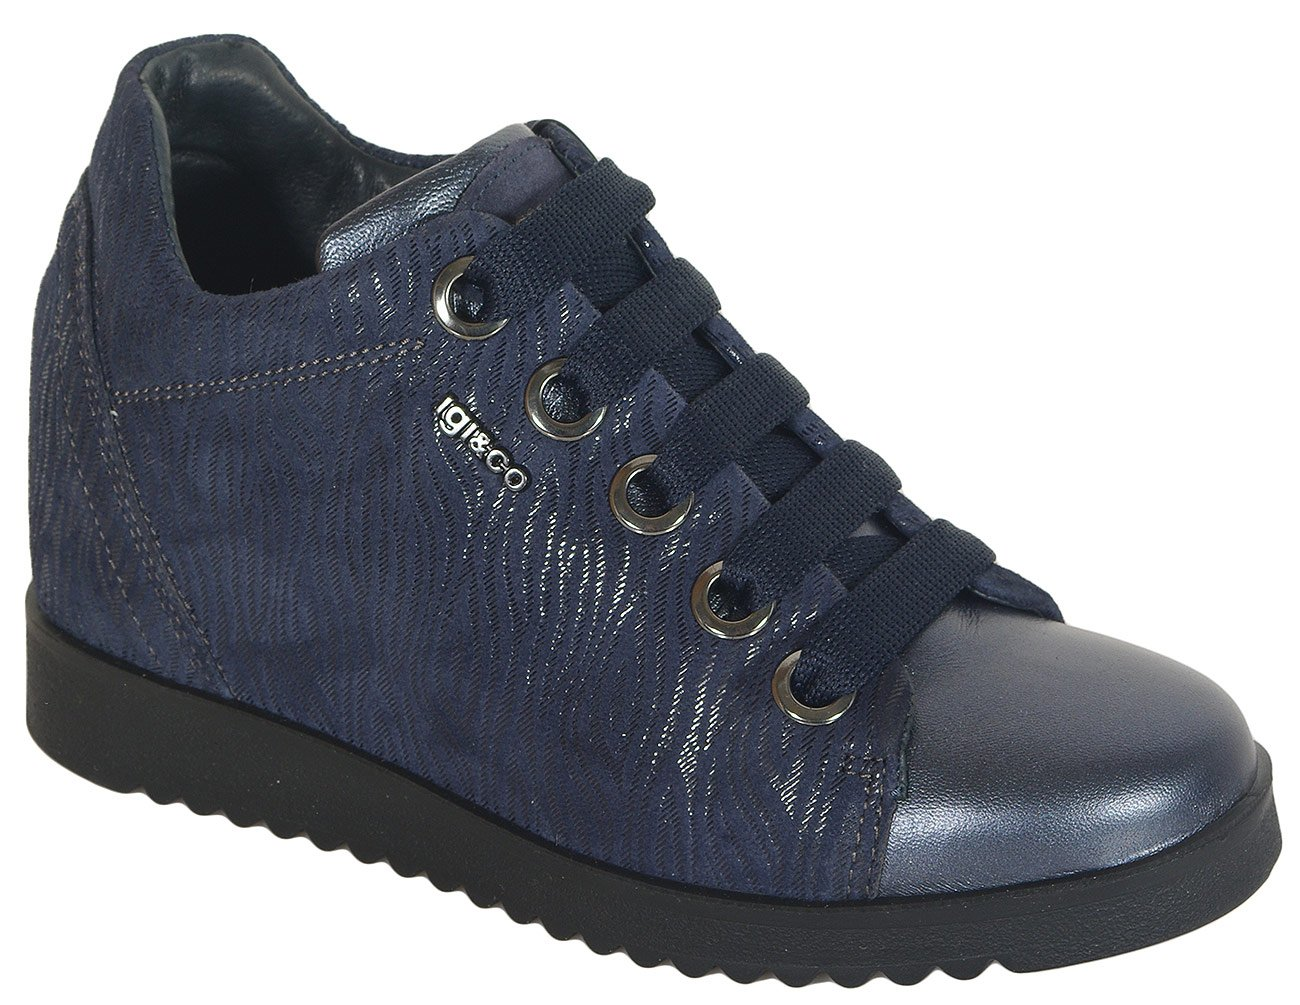 igi&co 41567 sneakers capra eyes blu